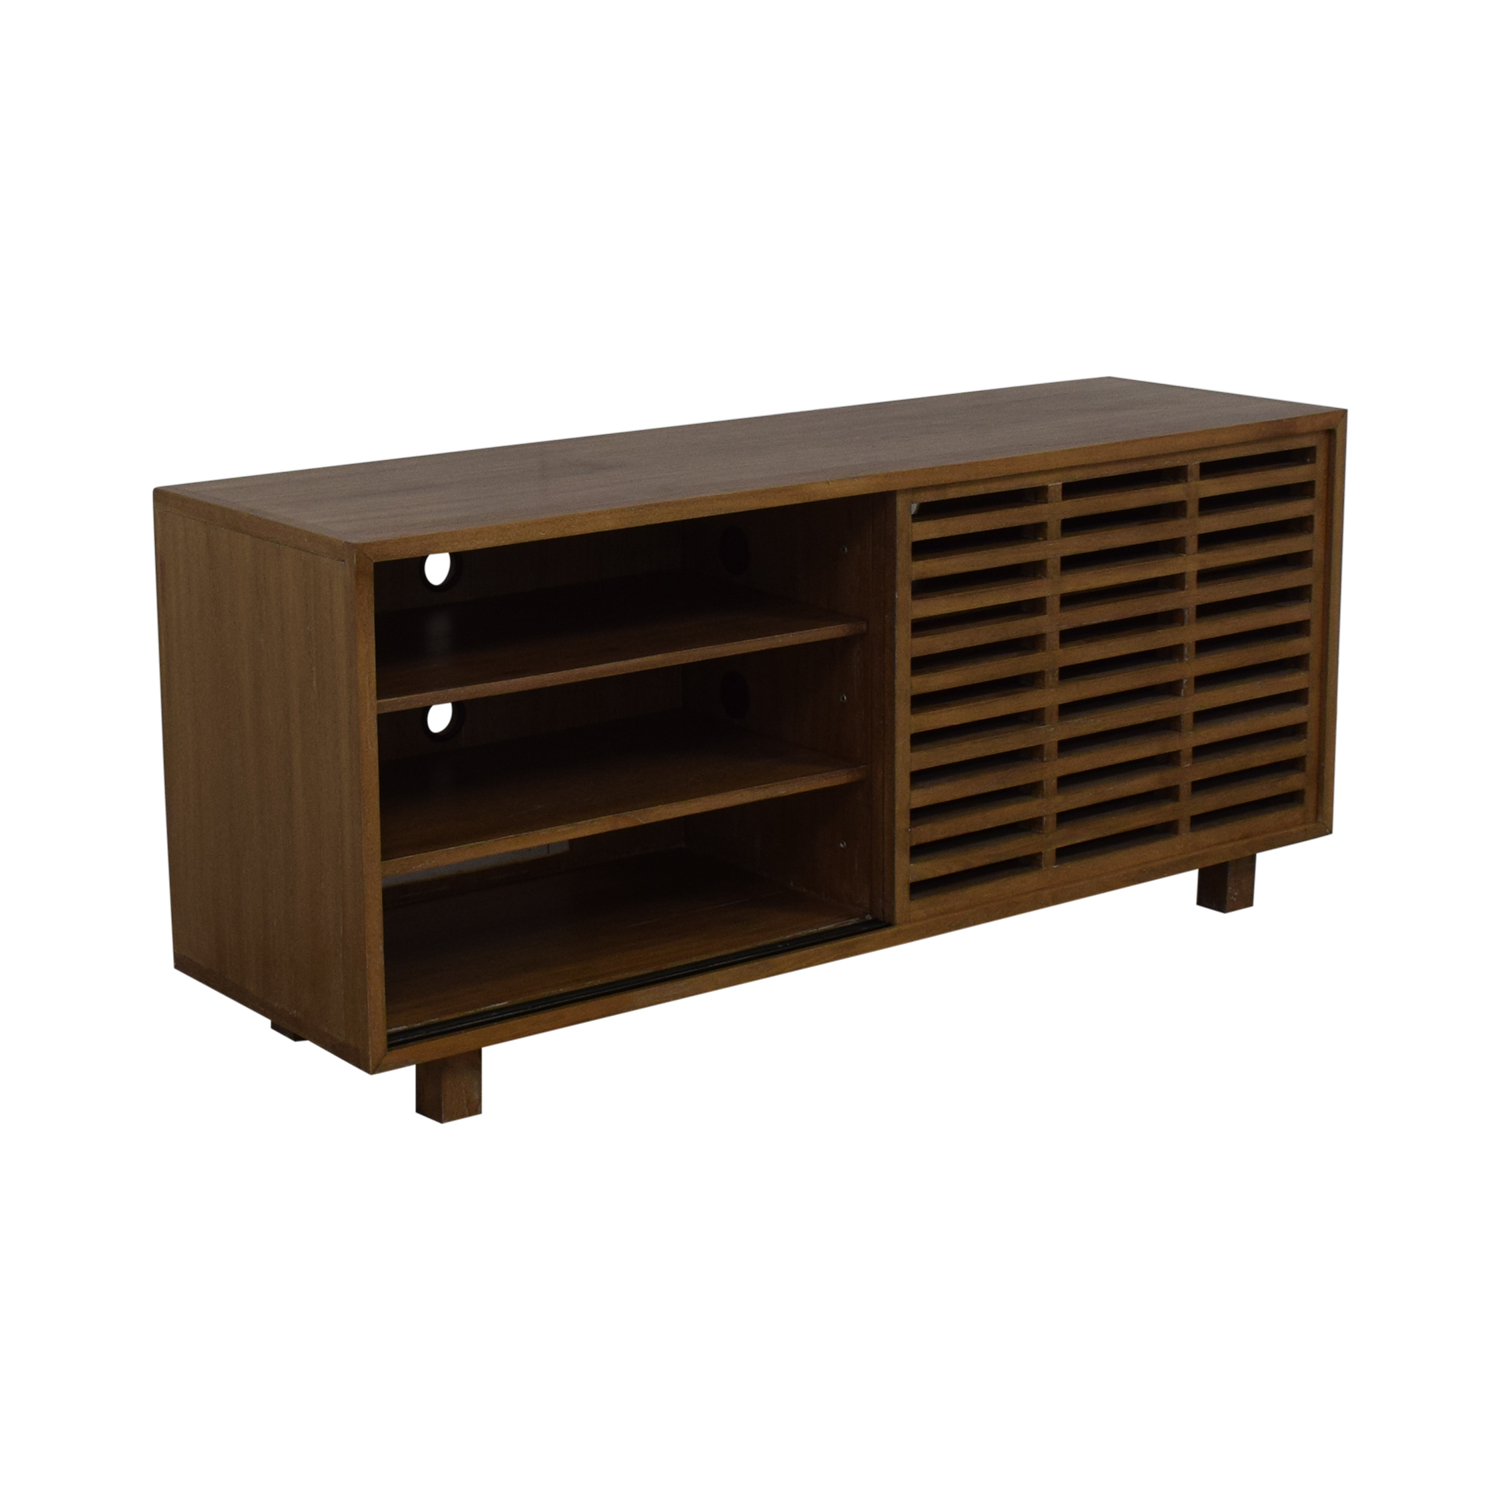 Oly Studio OLY Studio Dylan Contemporary Media Unit Media Units